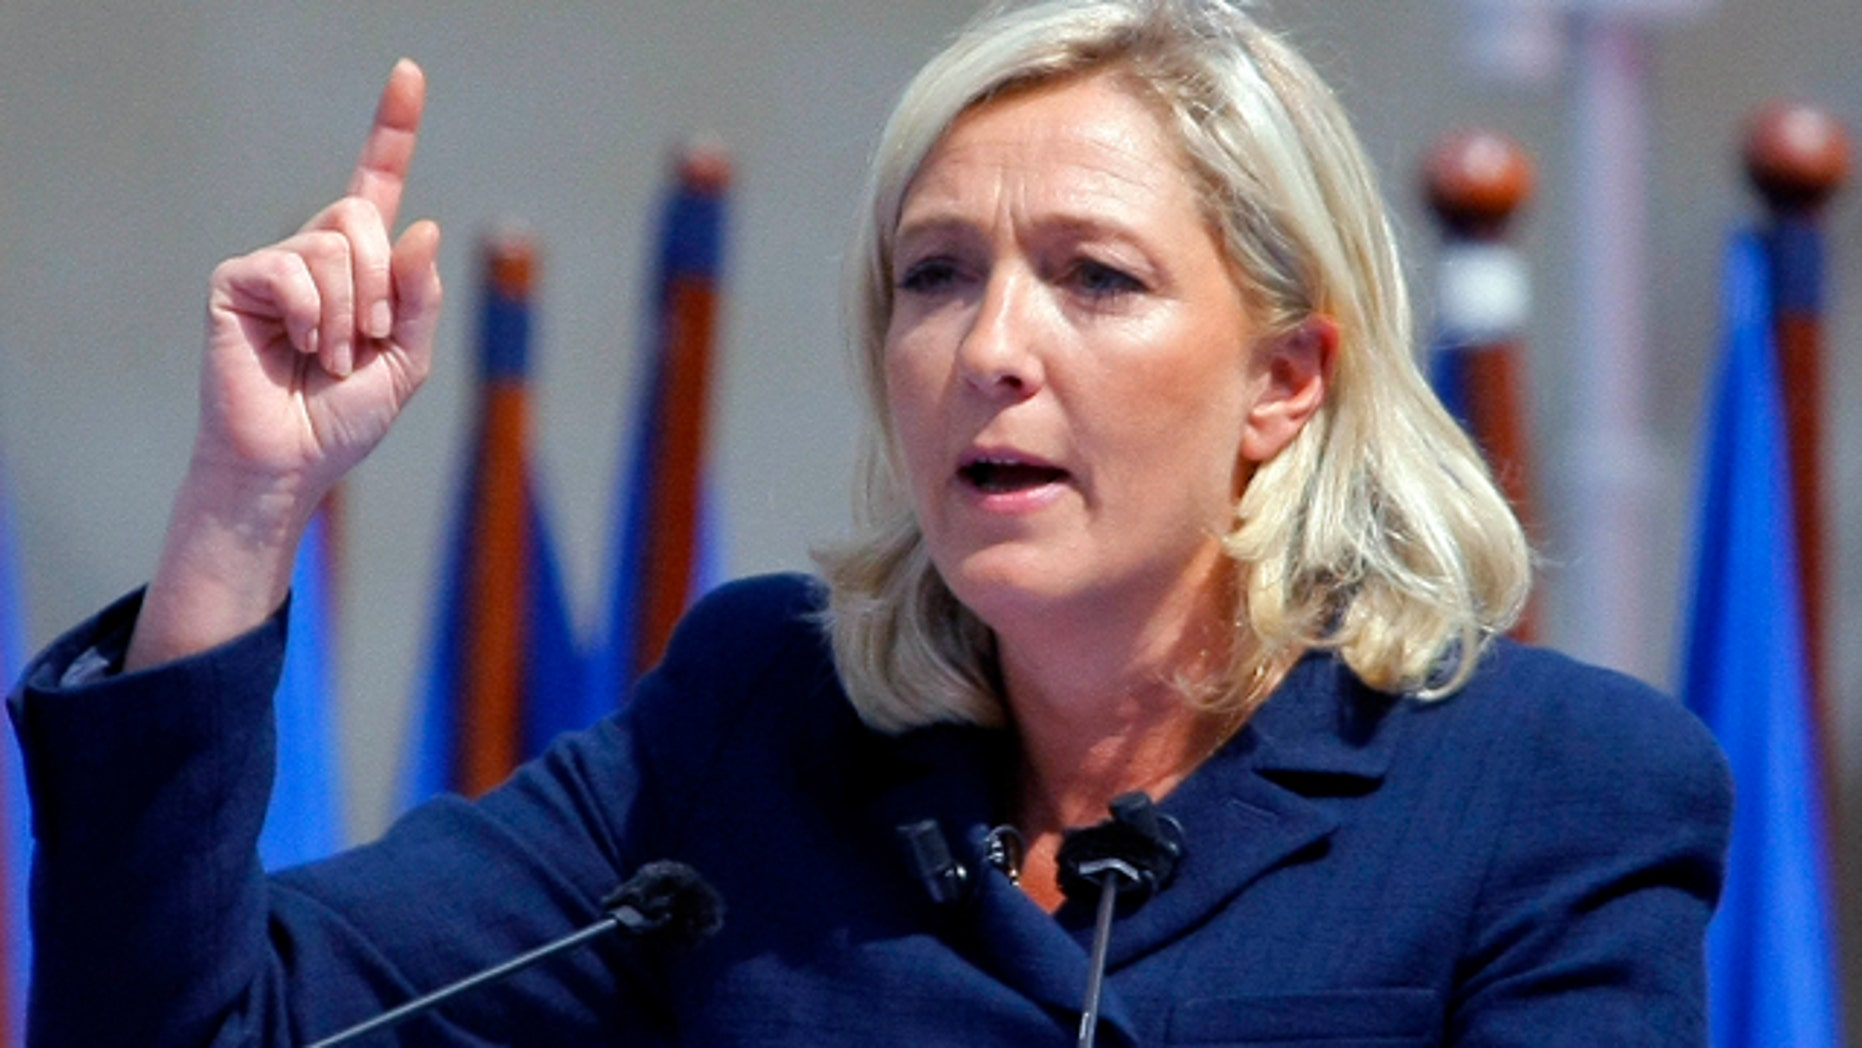 May 1, 2011: France's far-right National Front political leader Marine Le Pen delivers a speech.